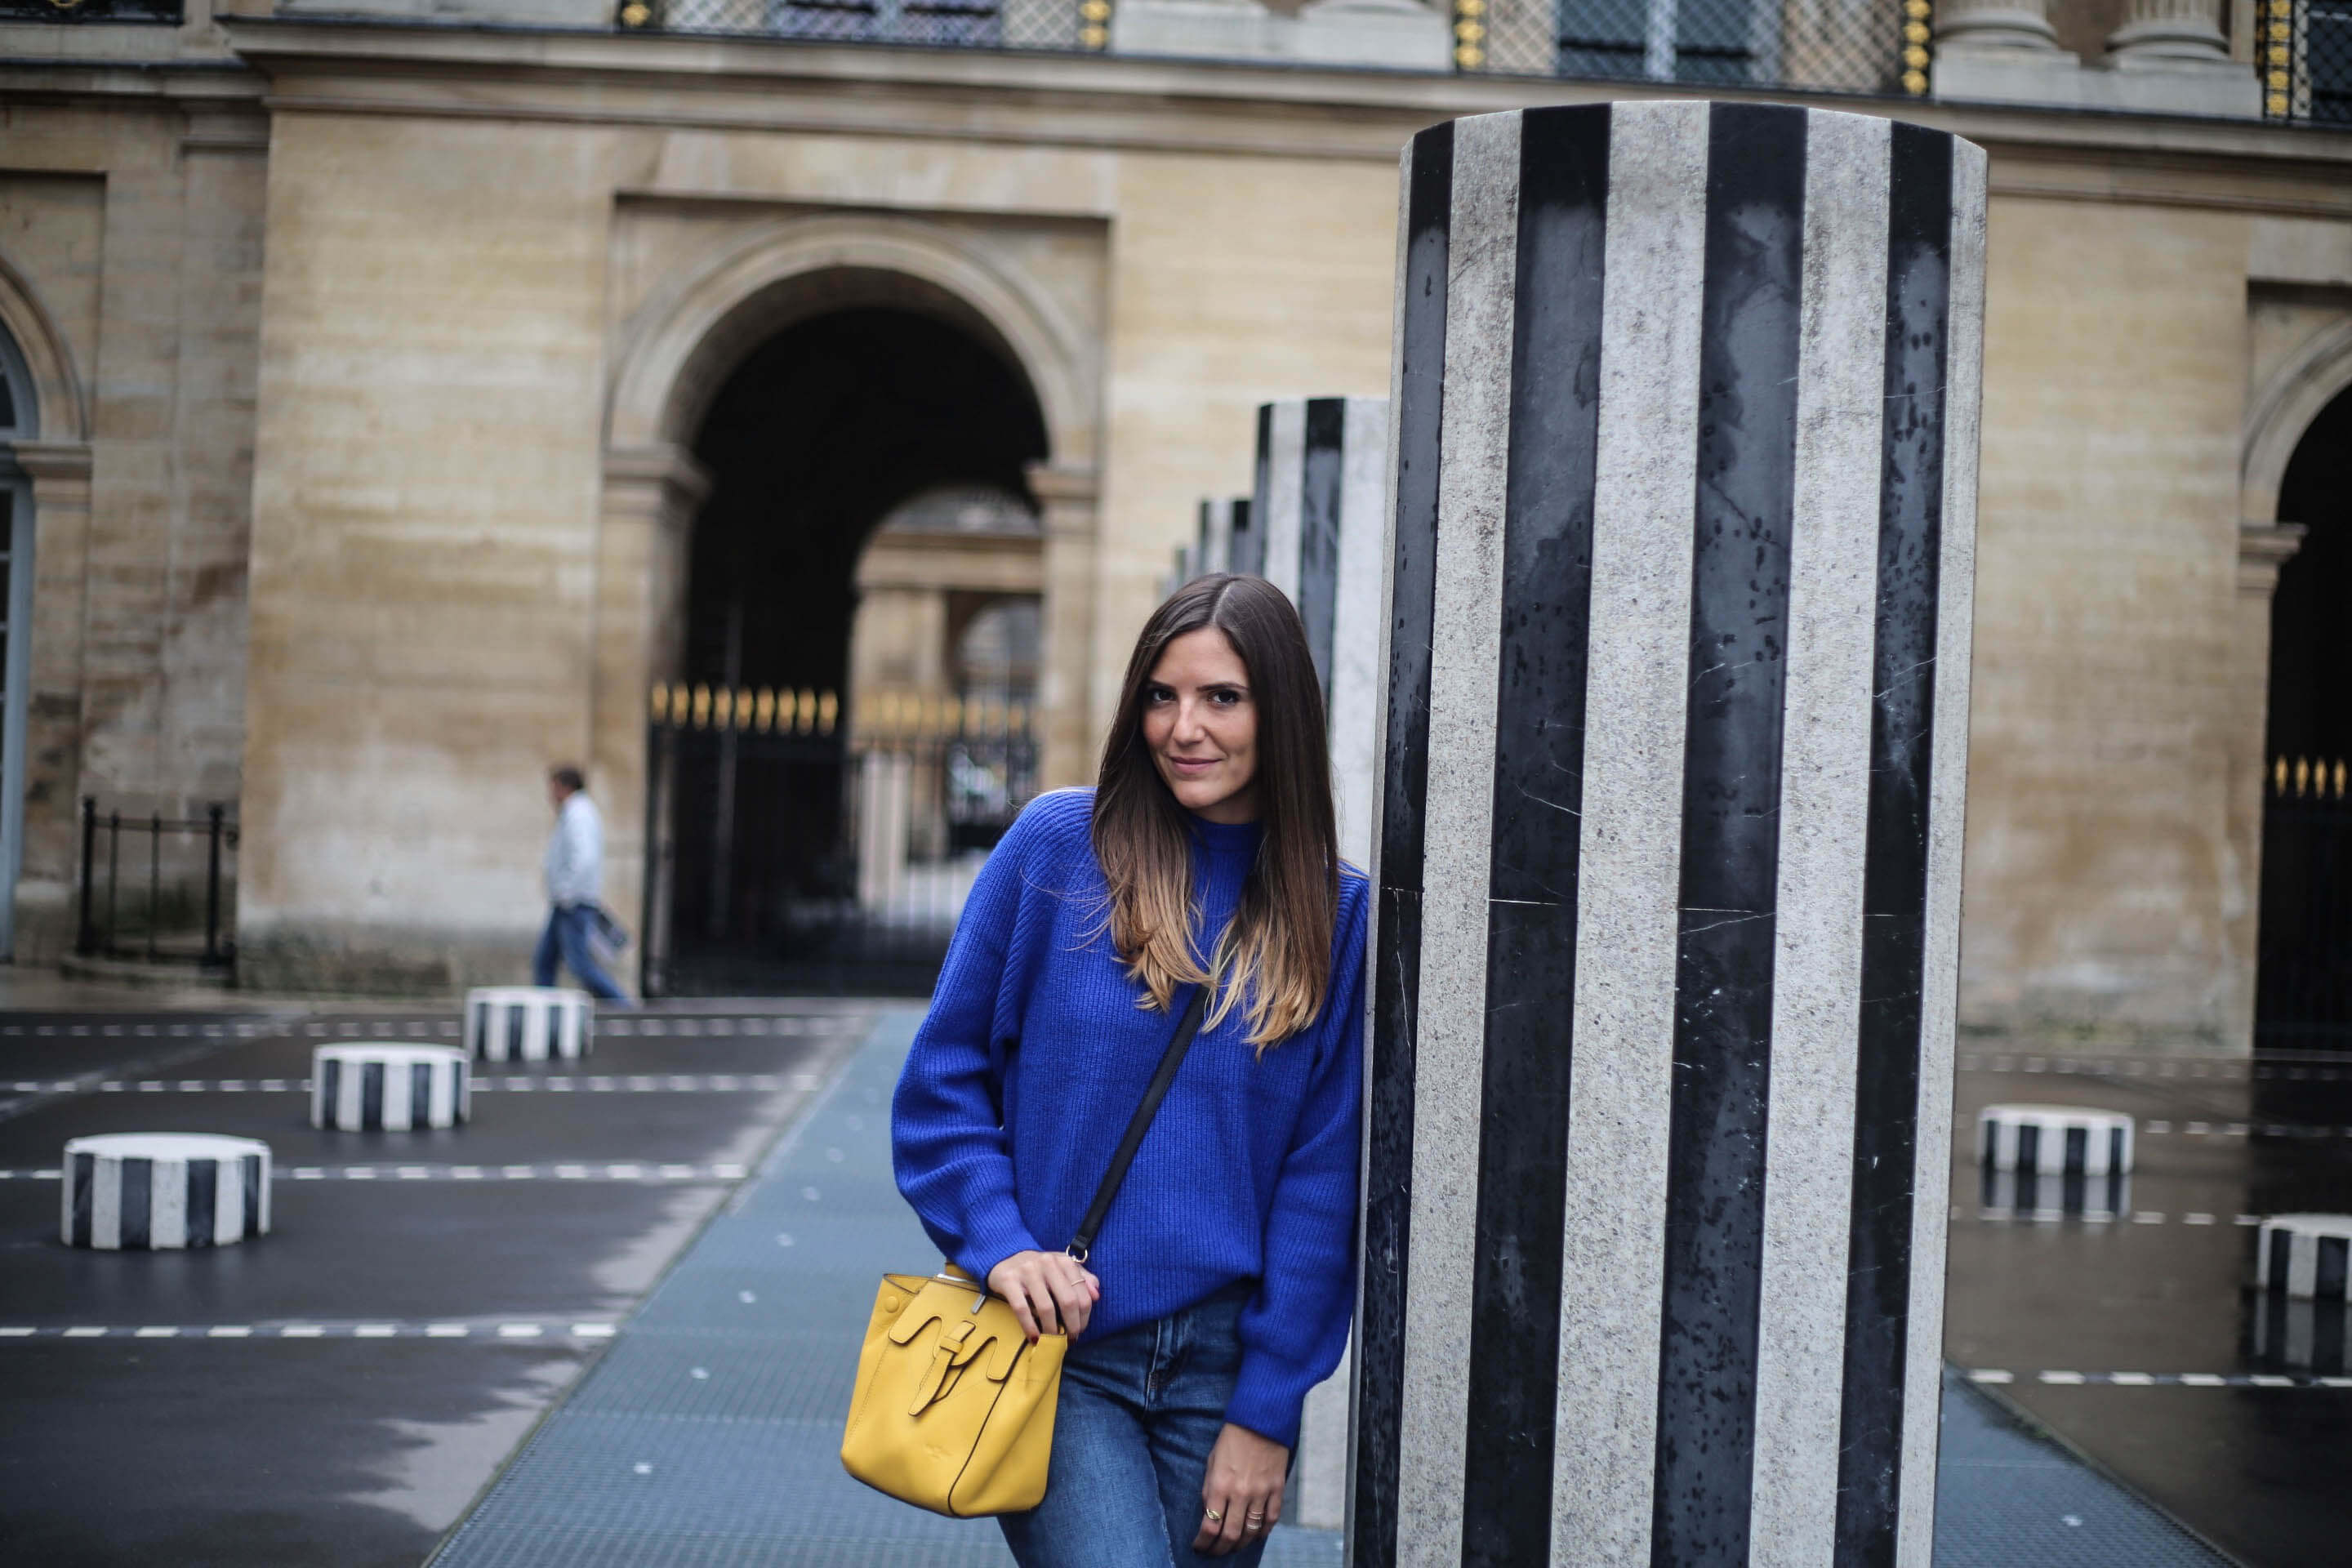 comment porter le jean mom blog mode tendance paris